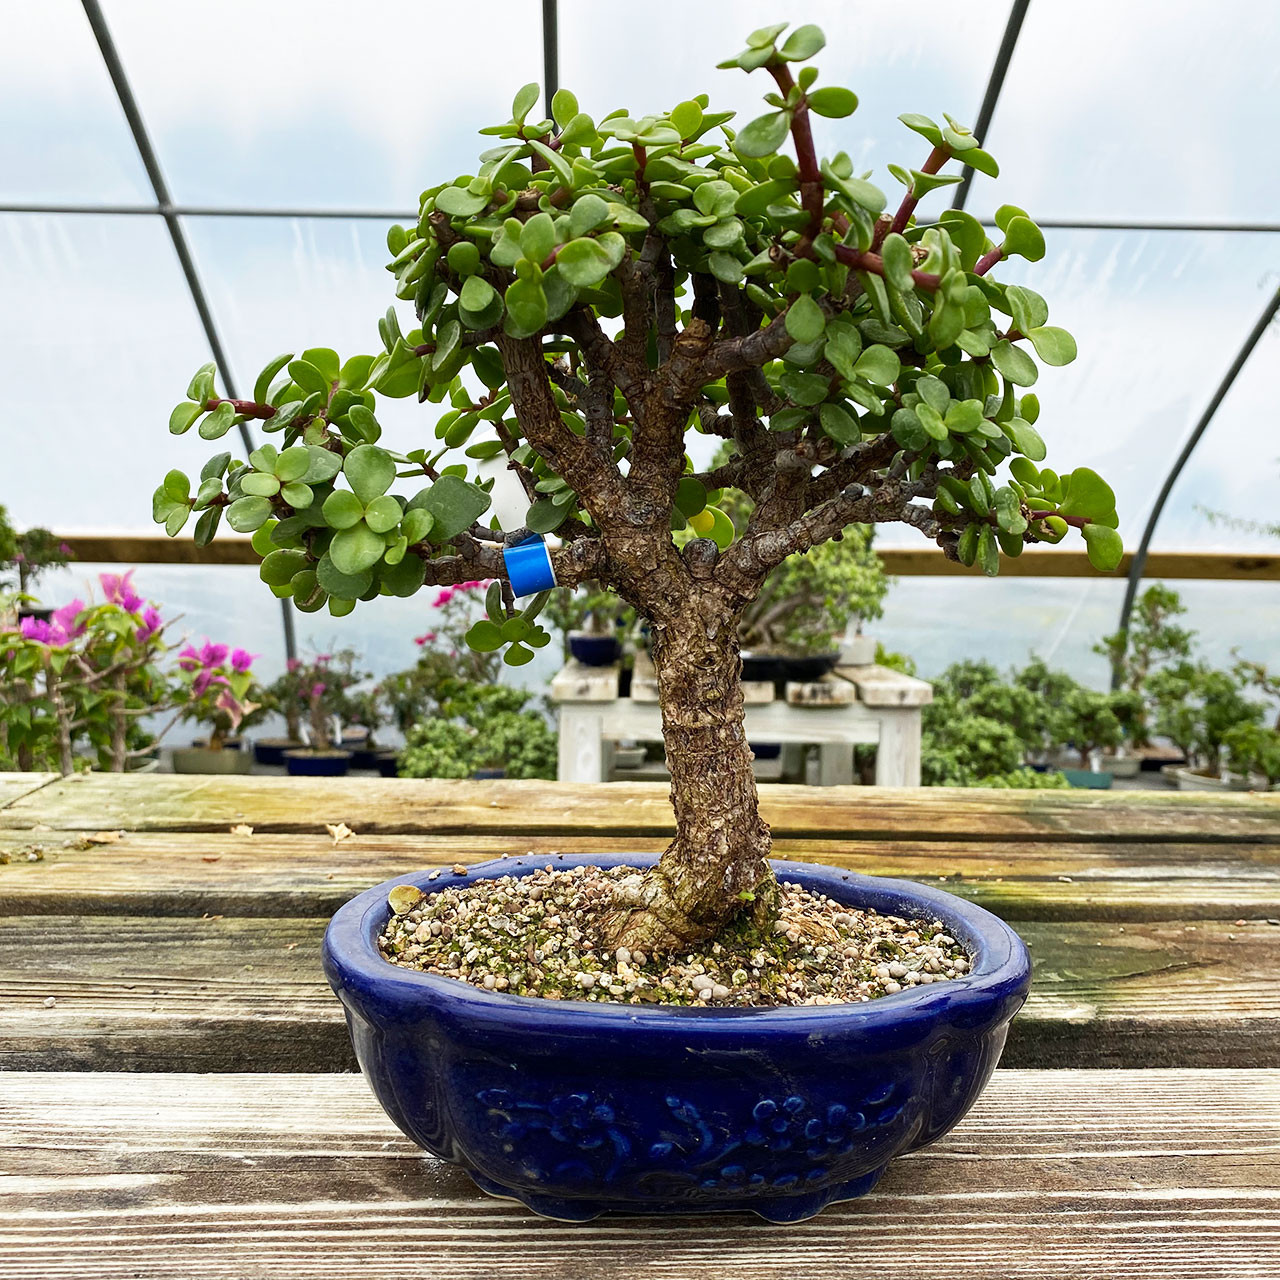 Dwarf Mini Jade Bonsai Tree New England Bonsai Gardens Uk 10